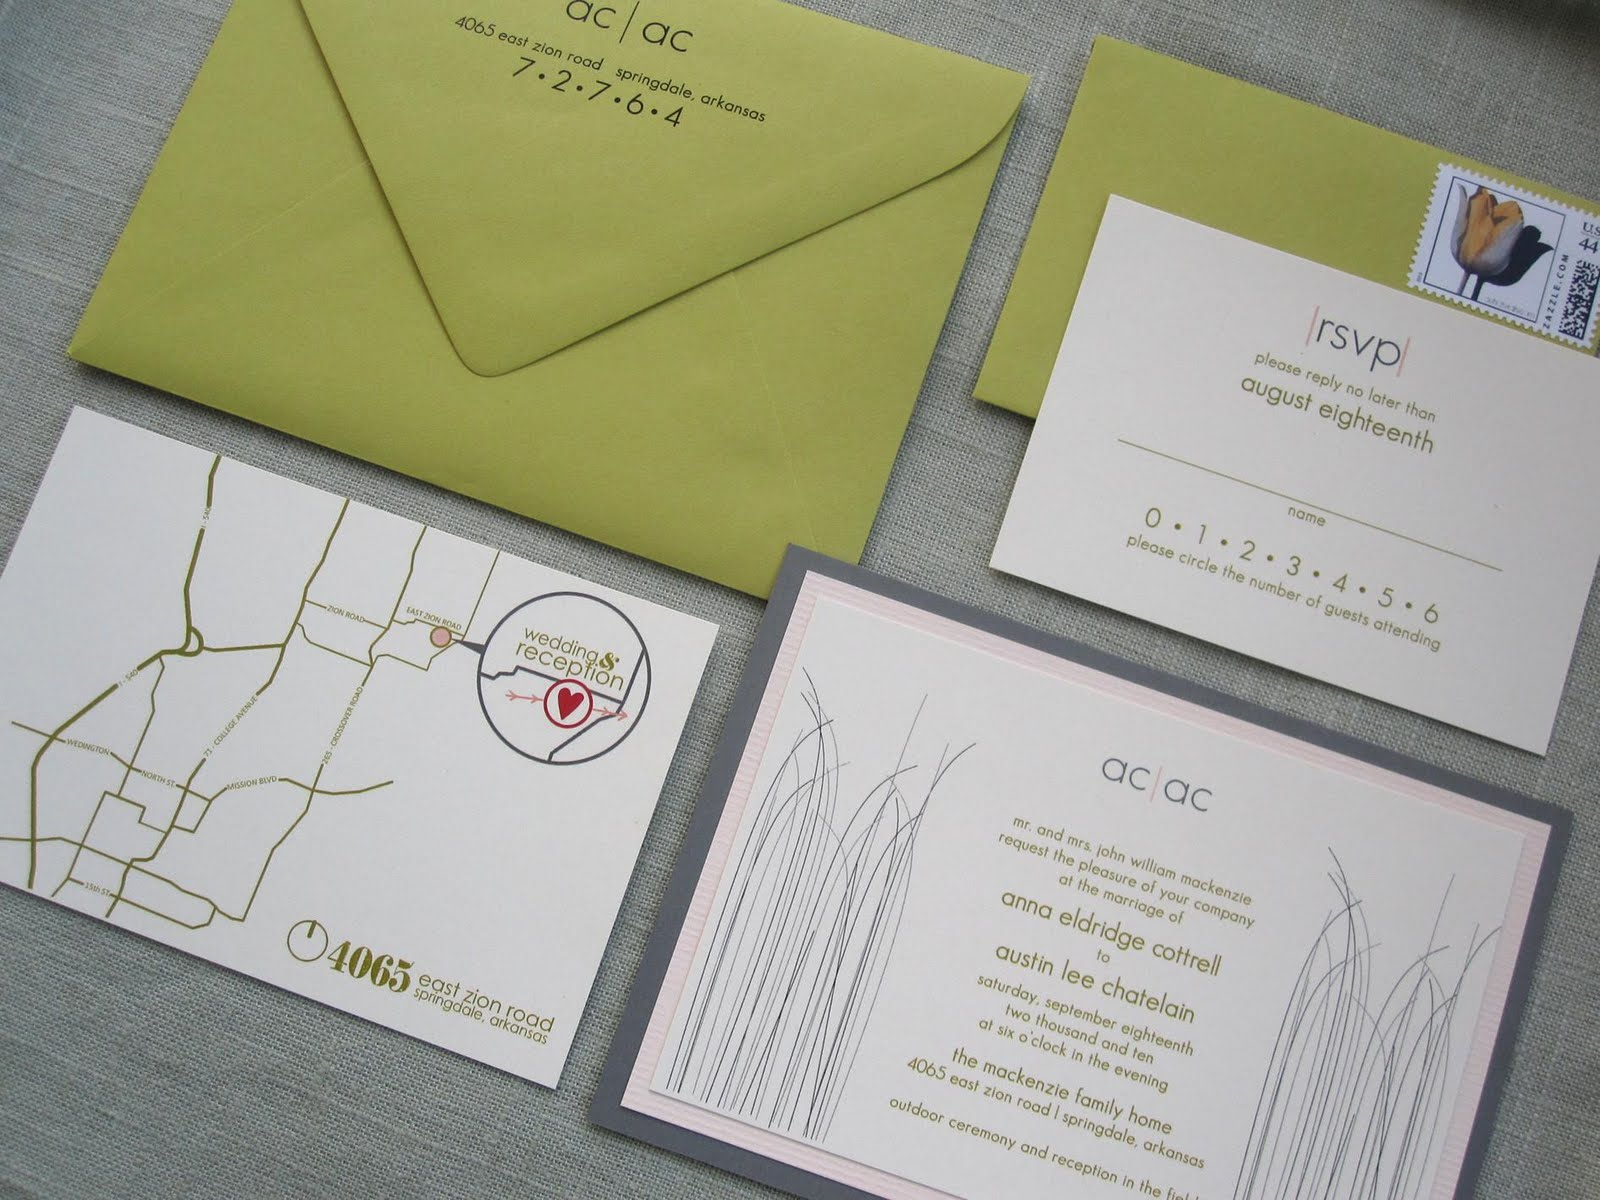 a wedding invitation like